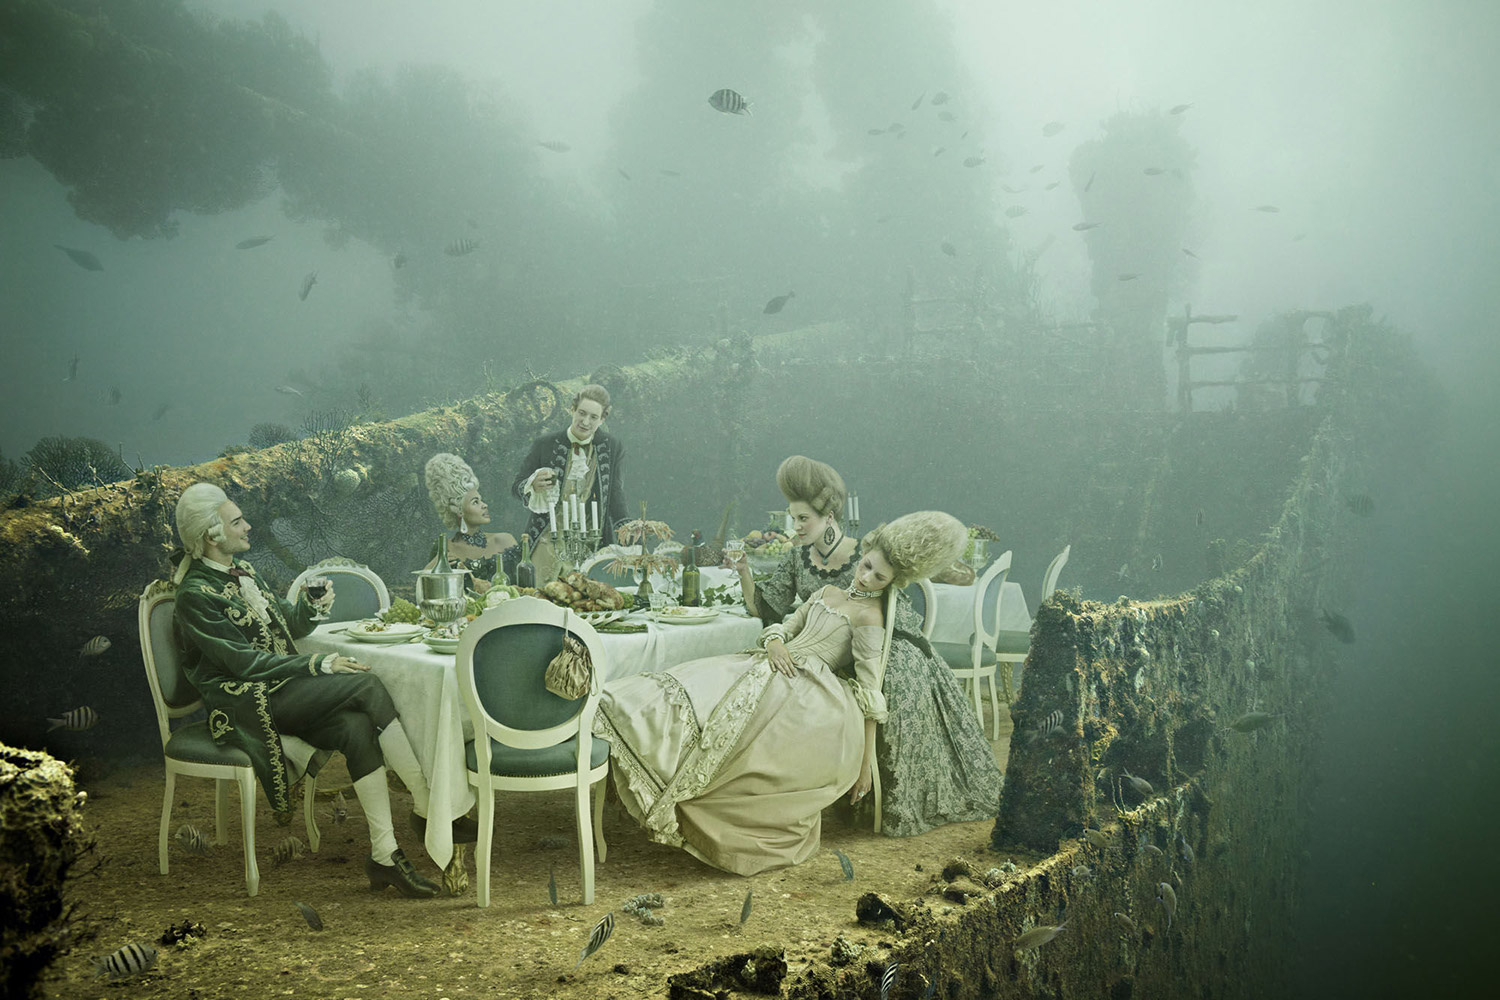 Andreas Franke - The Sinking World, dining room